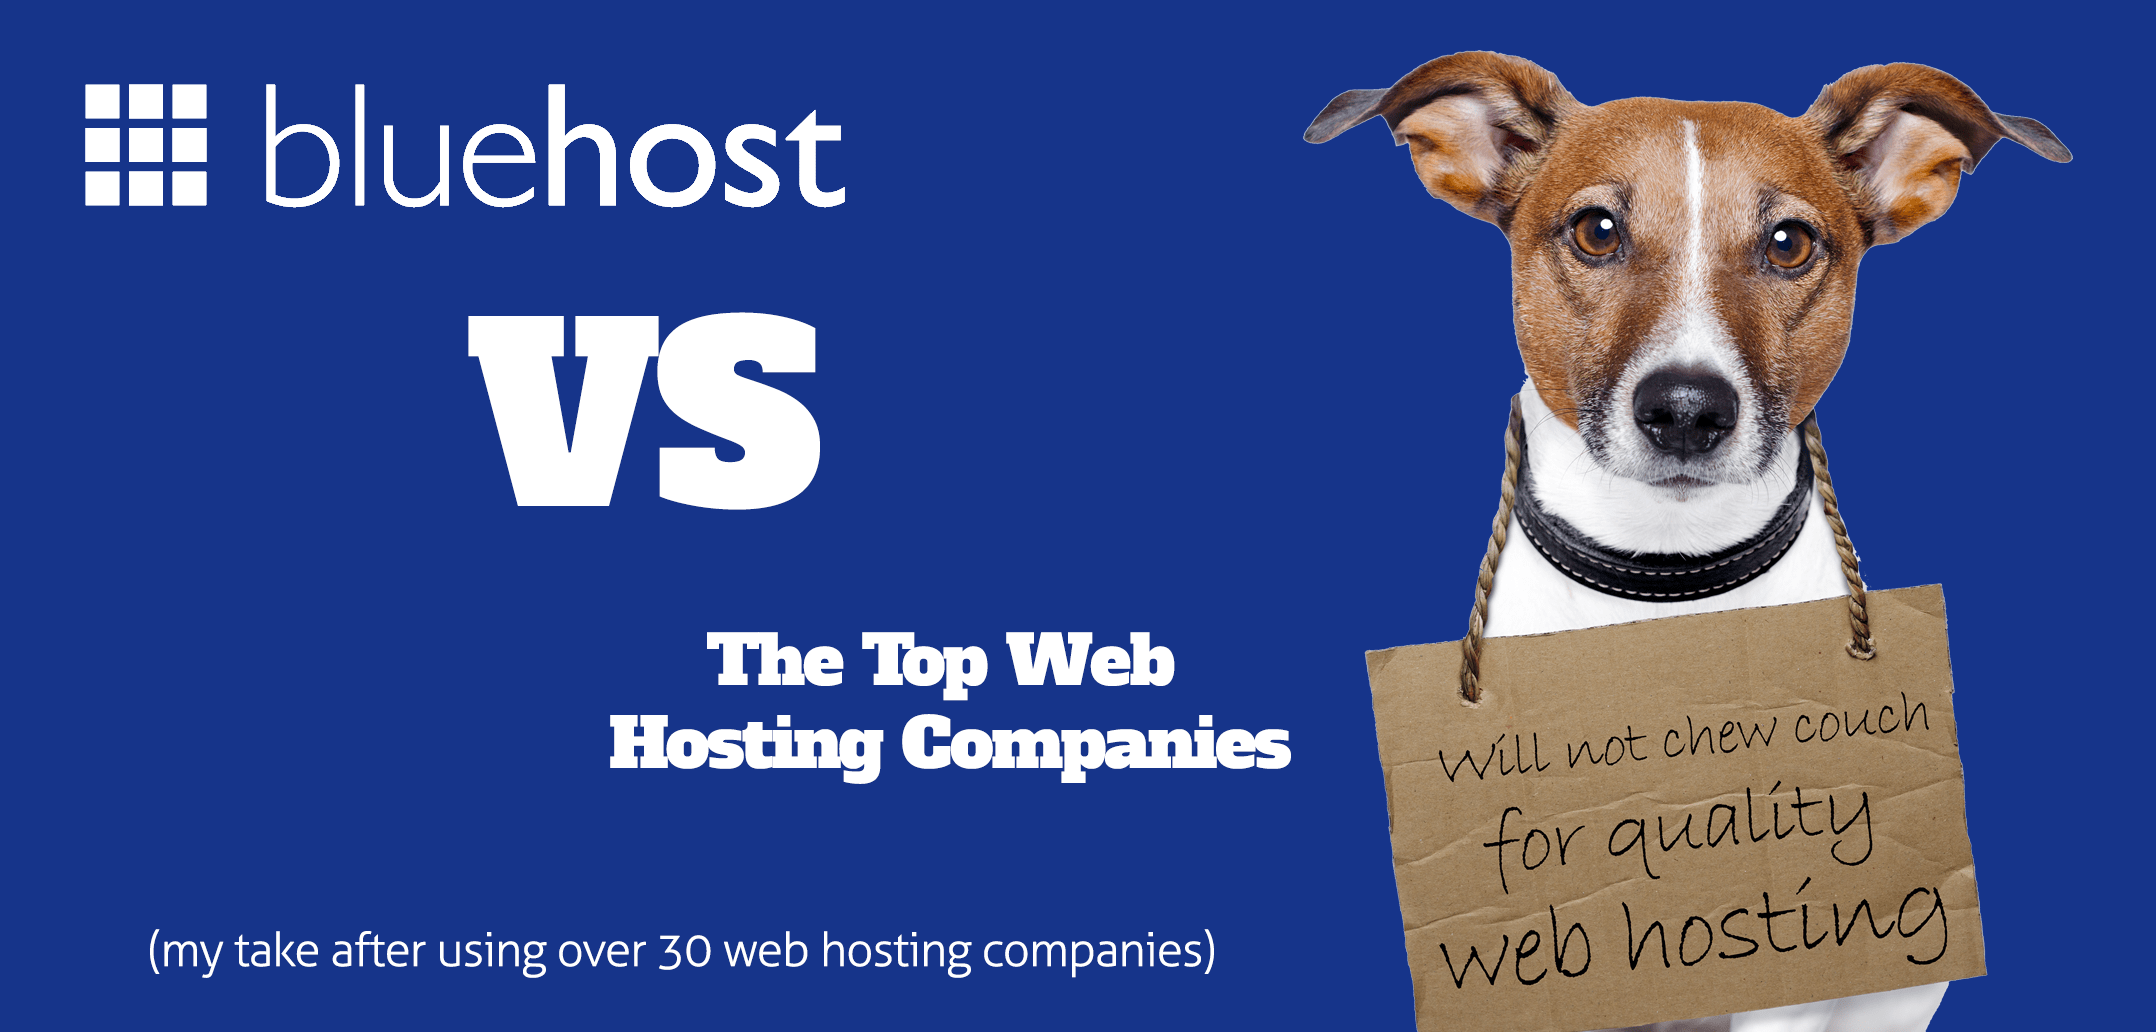 bluehost vs the top hosting companies  my take from